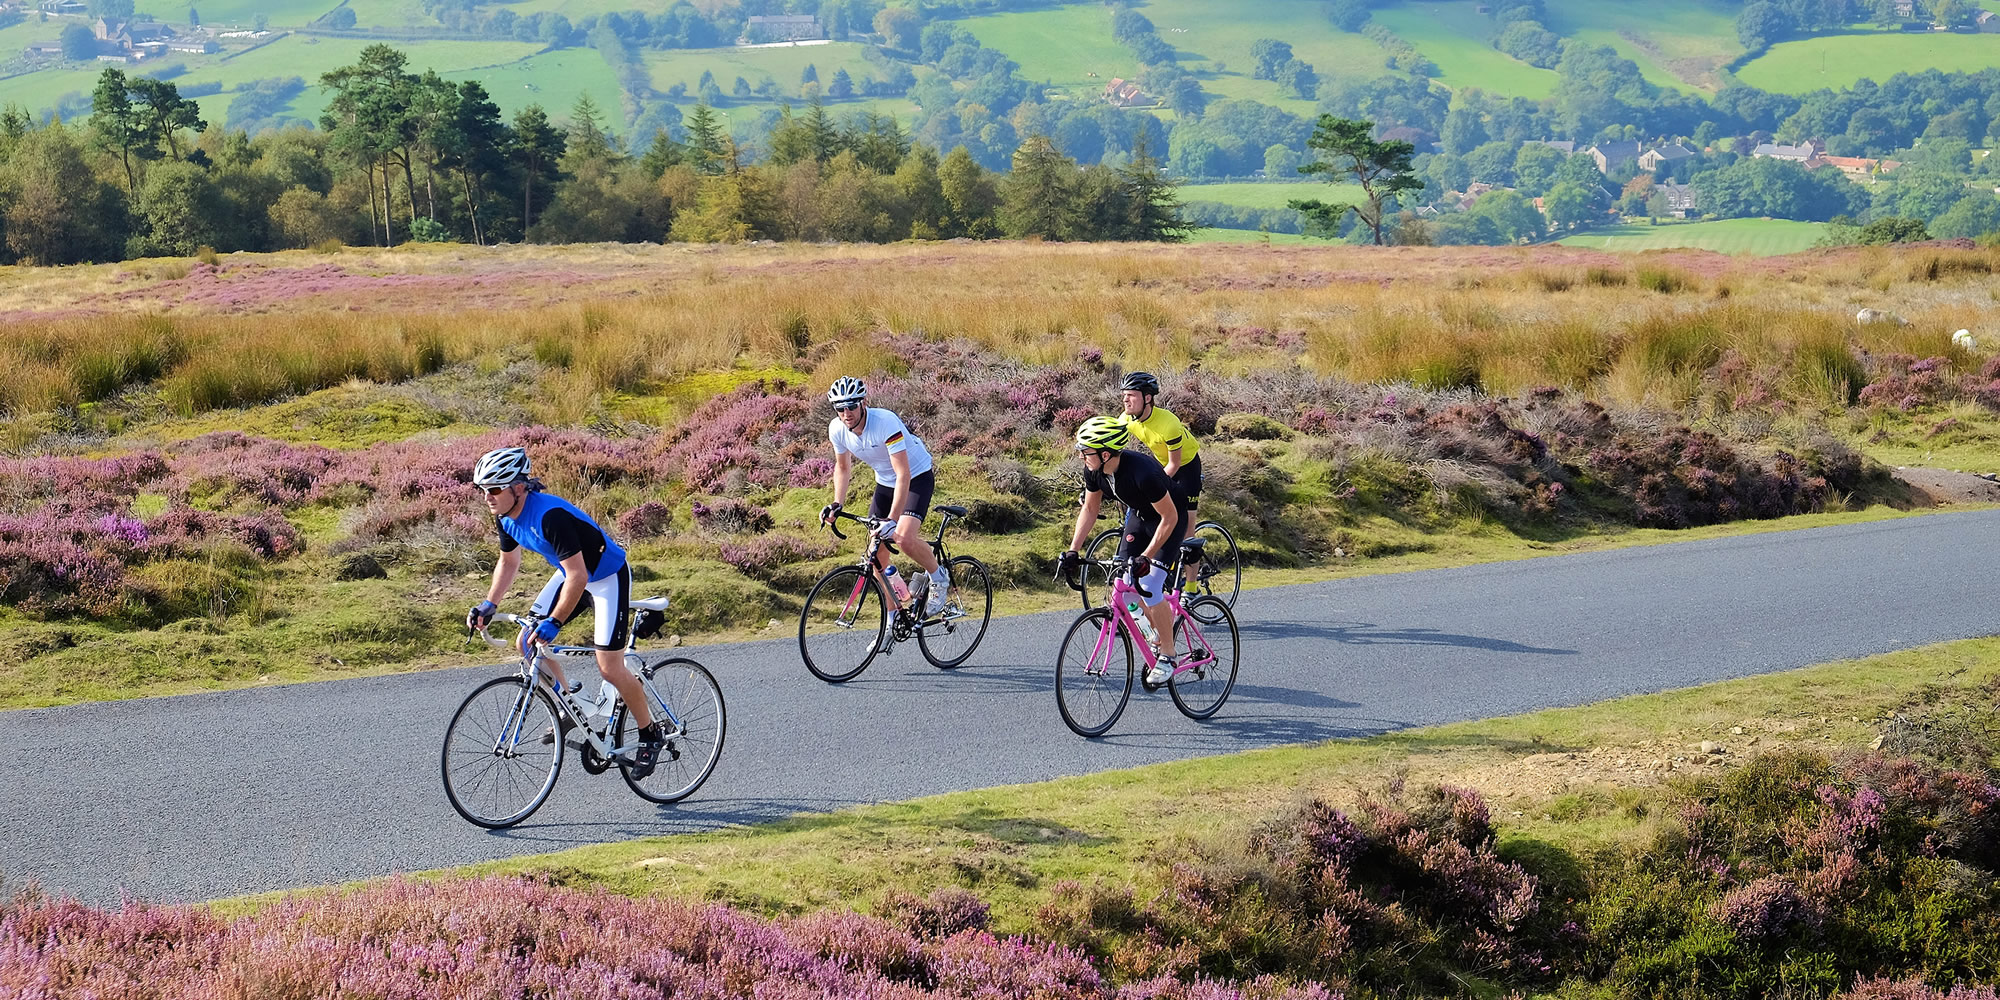 Cyclists on a quite road with heather and grassy fields beyond